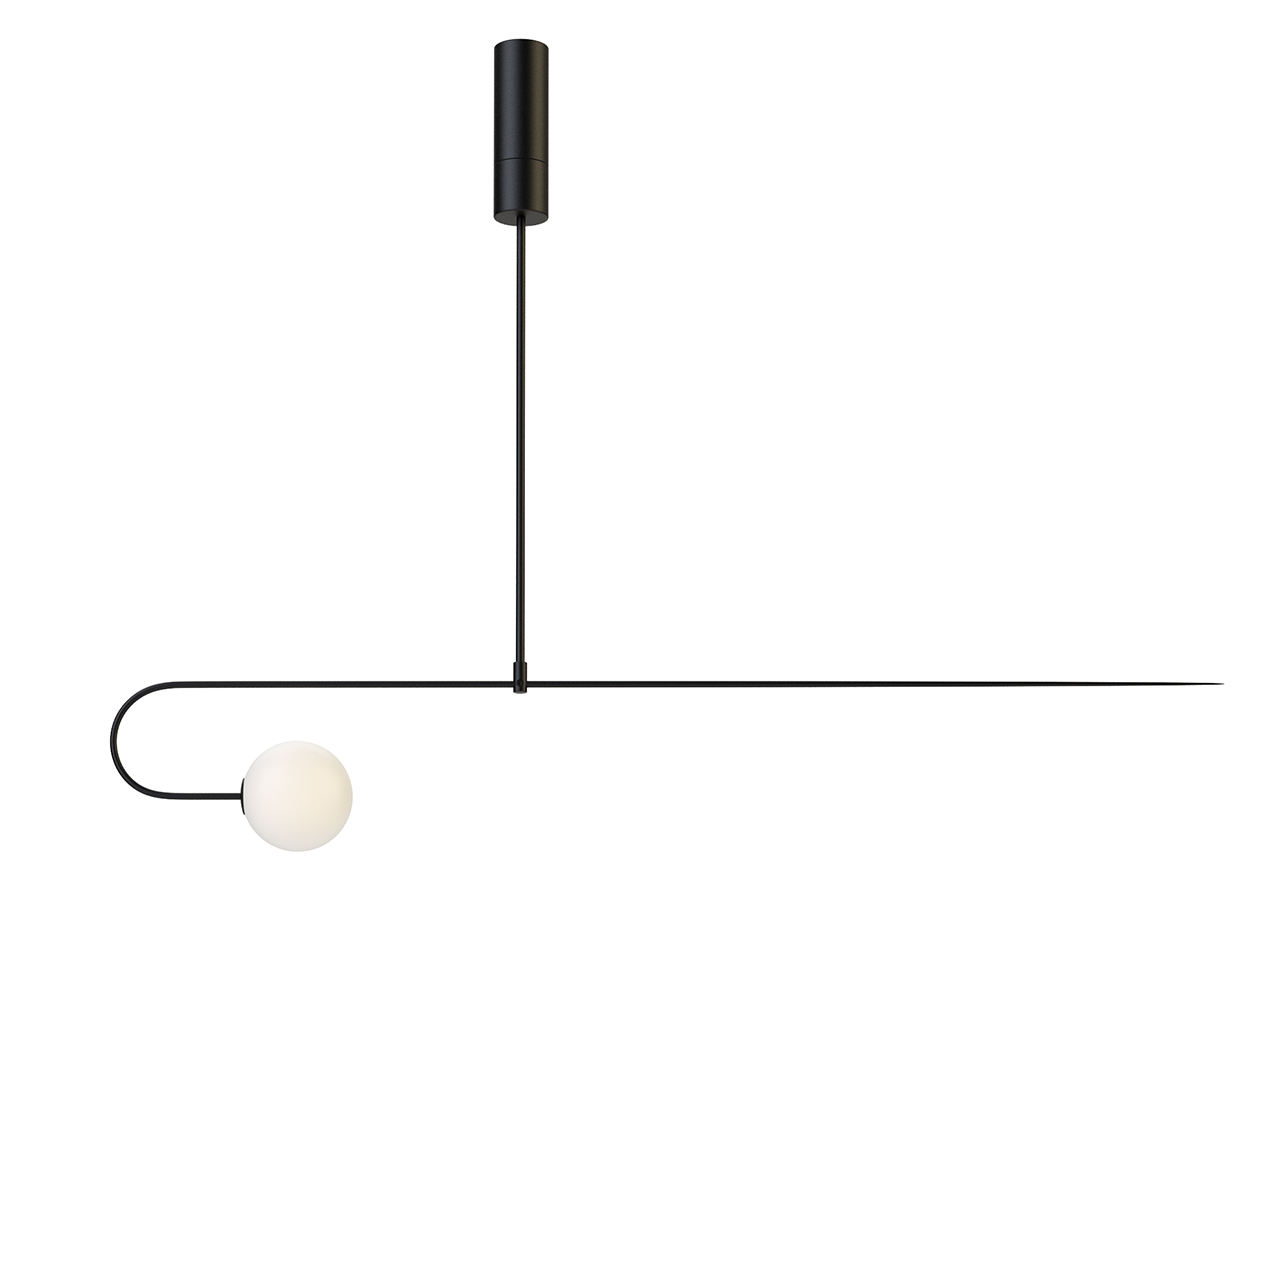 Mobile Chandelier 8 by Michael Anastassiades